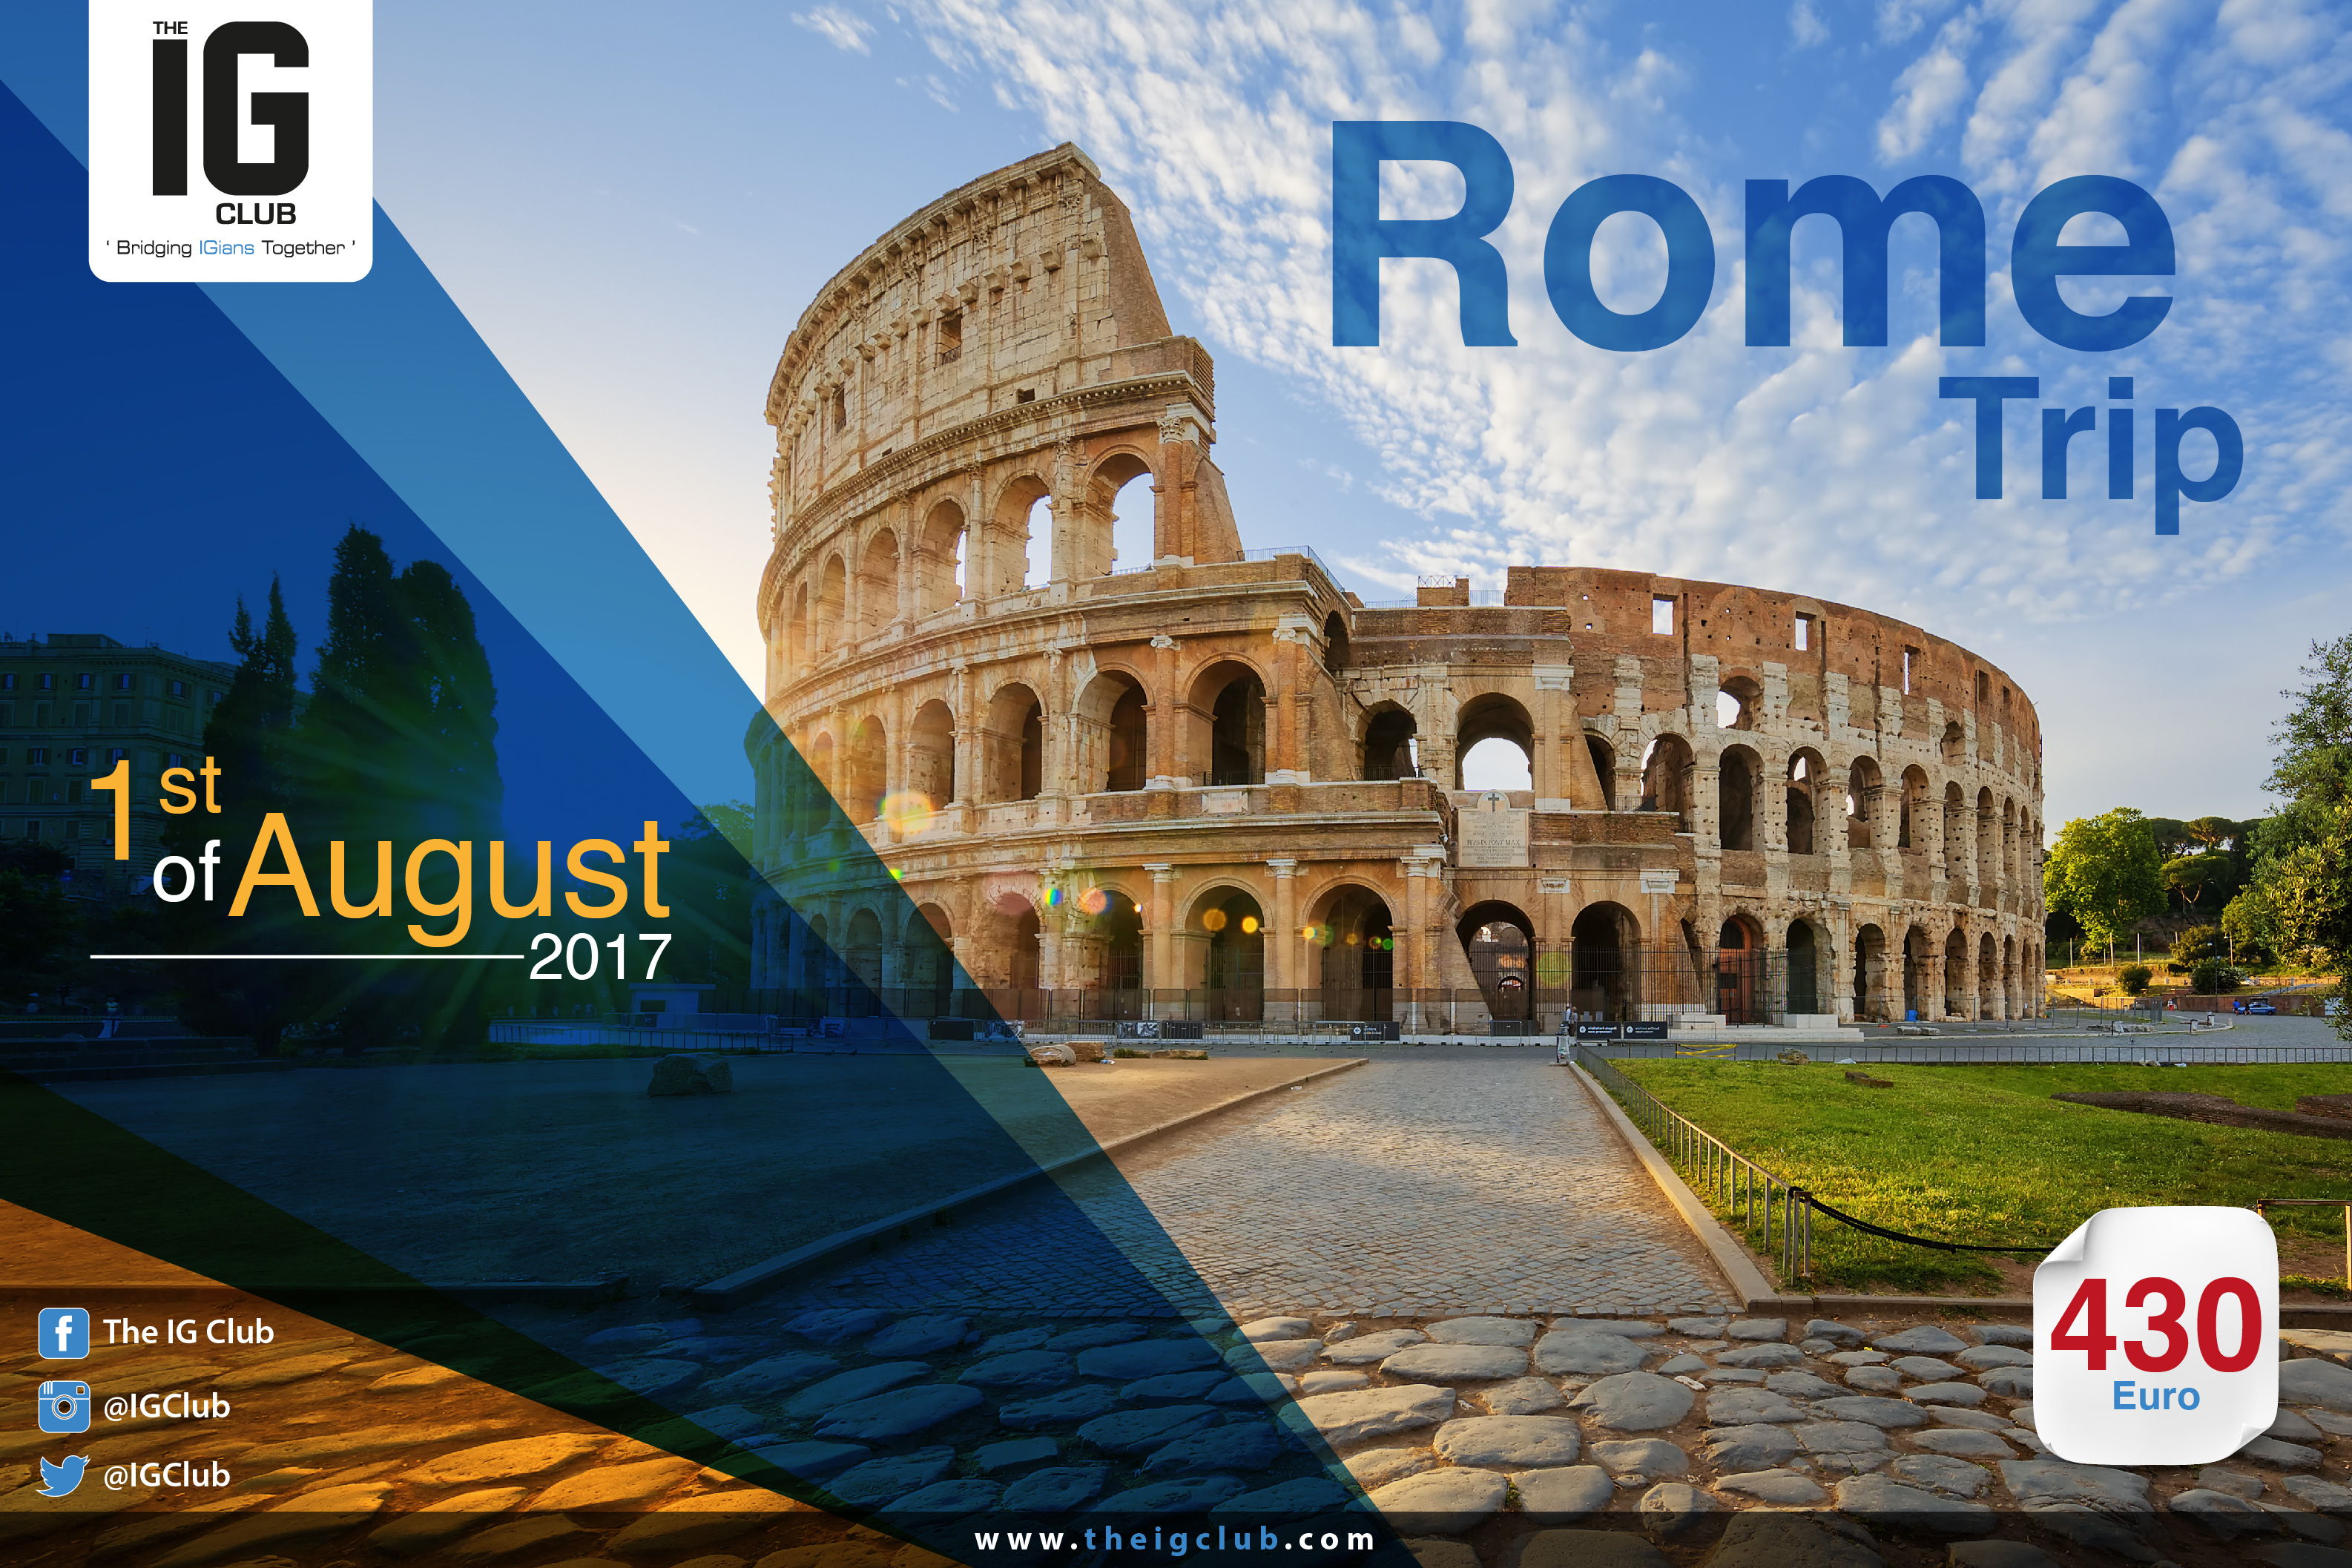 The IG Club trip to ROME - Summer 2017